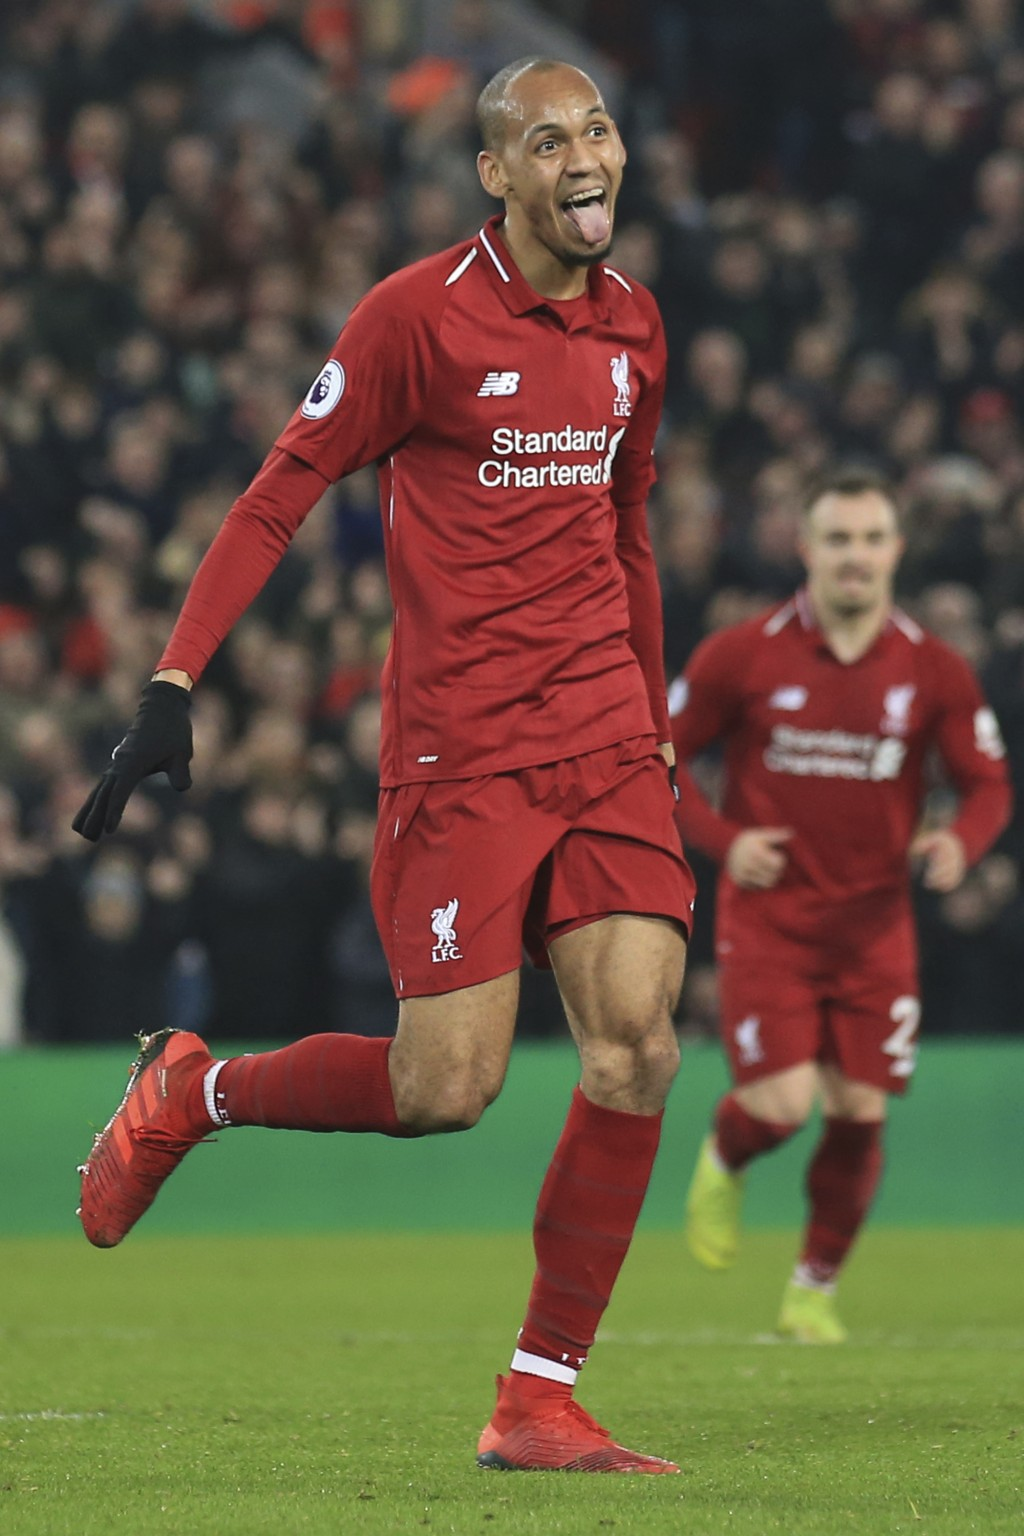 Liverpool's Fabinho celebrates after scoring his side's fourth goal during the English Premier League soccer match between Liverpool and Newcastle at